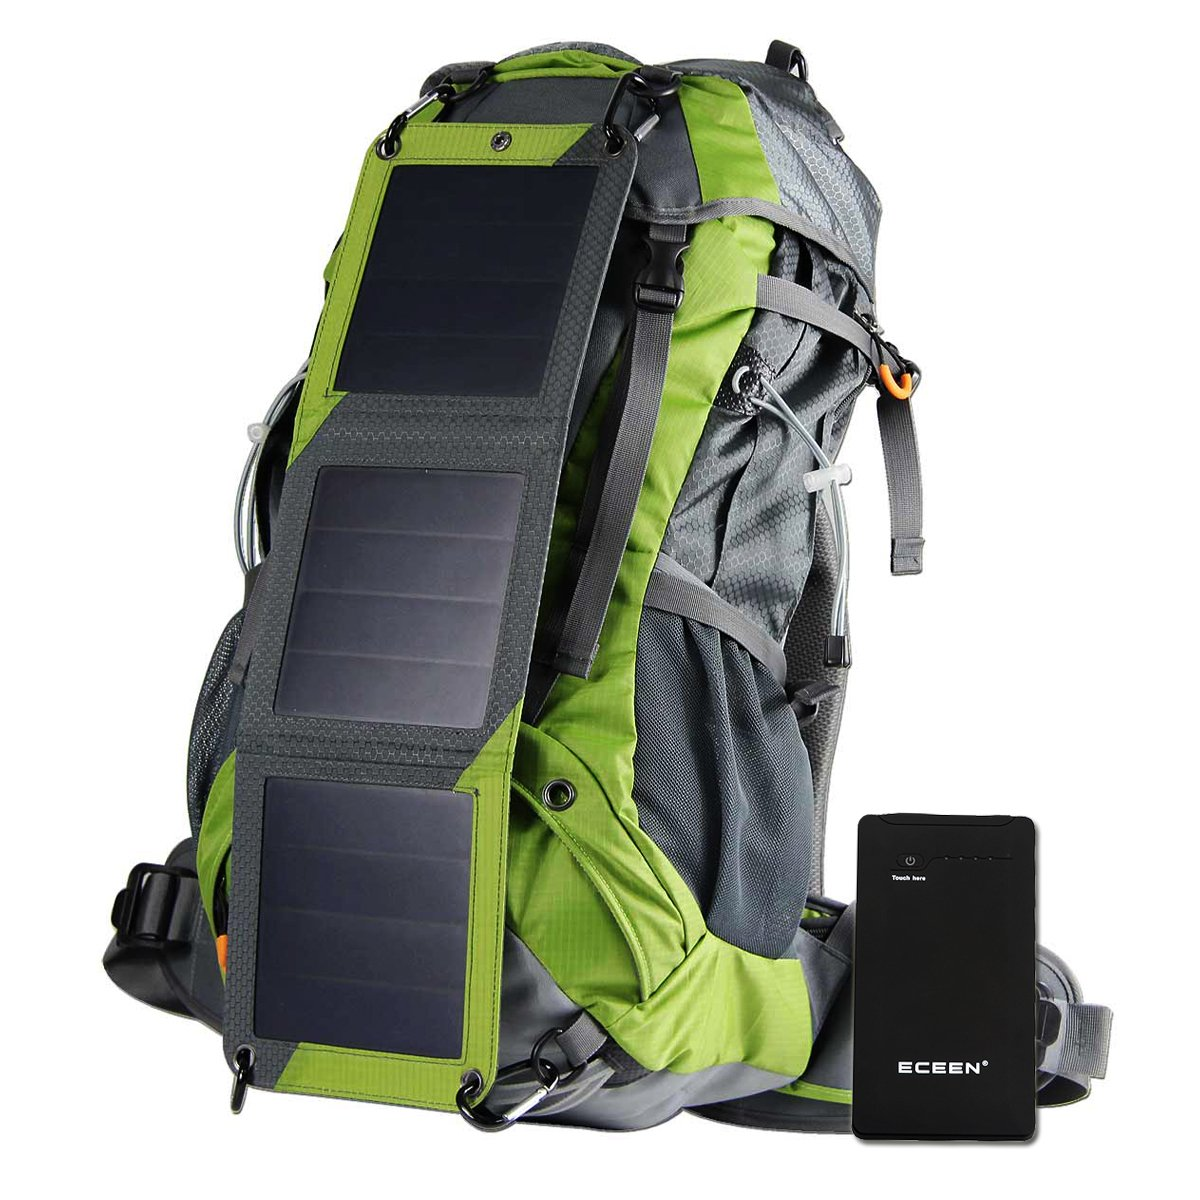 External Frame Backpack with Solar Phone Charger, 10000mAH Battery Pack for IOS iPhone Samsung Android Smartphones, 2L Hydration Pack, Rain Cover for Backpacking Camping Mountaineering Climbing Voyage Outdoor Sports ECEEN